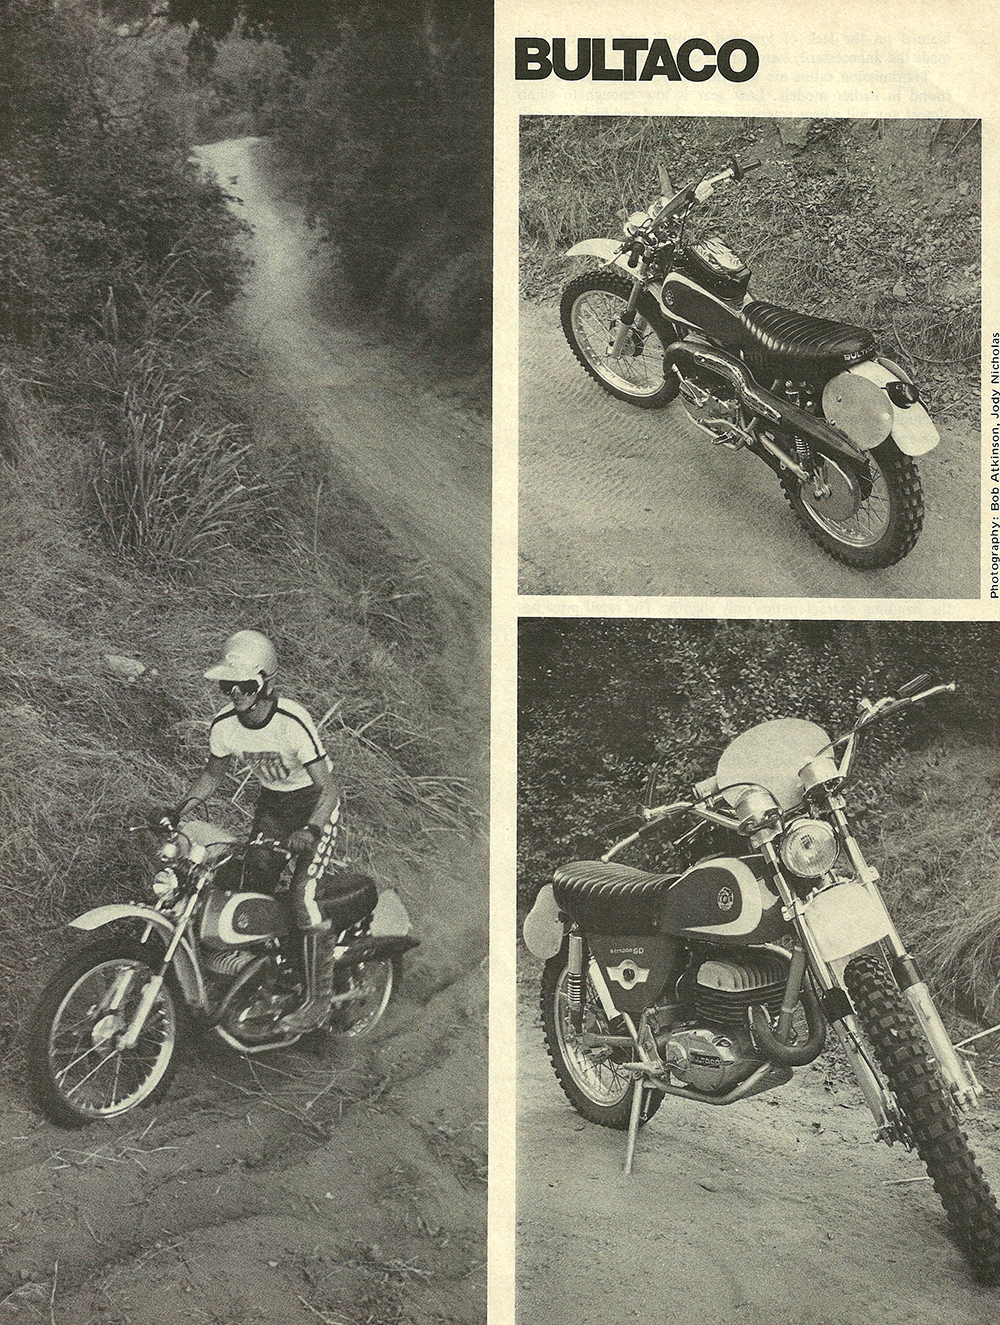 1974 Bultaco Matador 250 Mark 5 road test 04.jpg